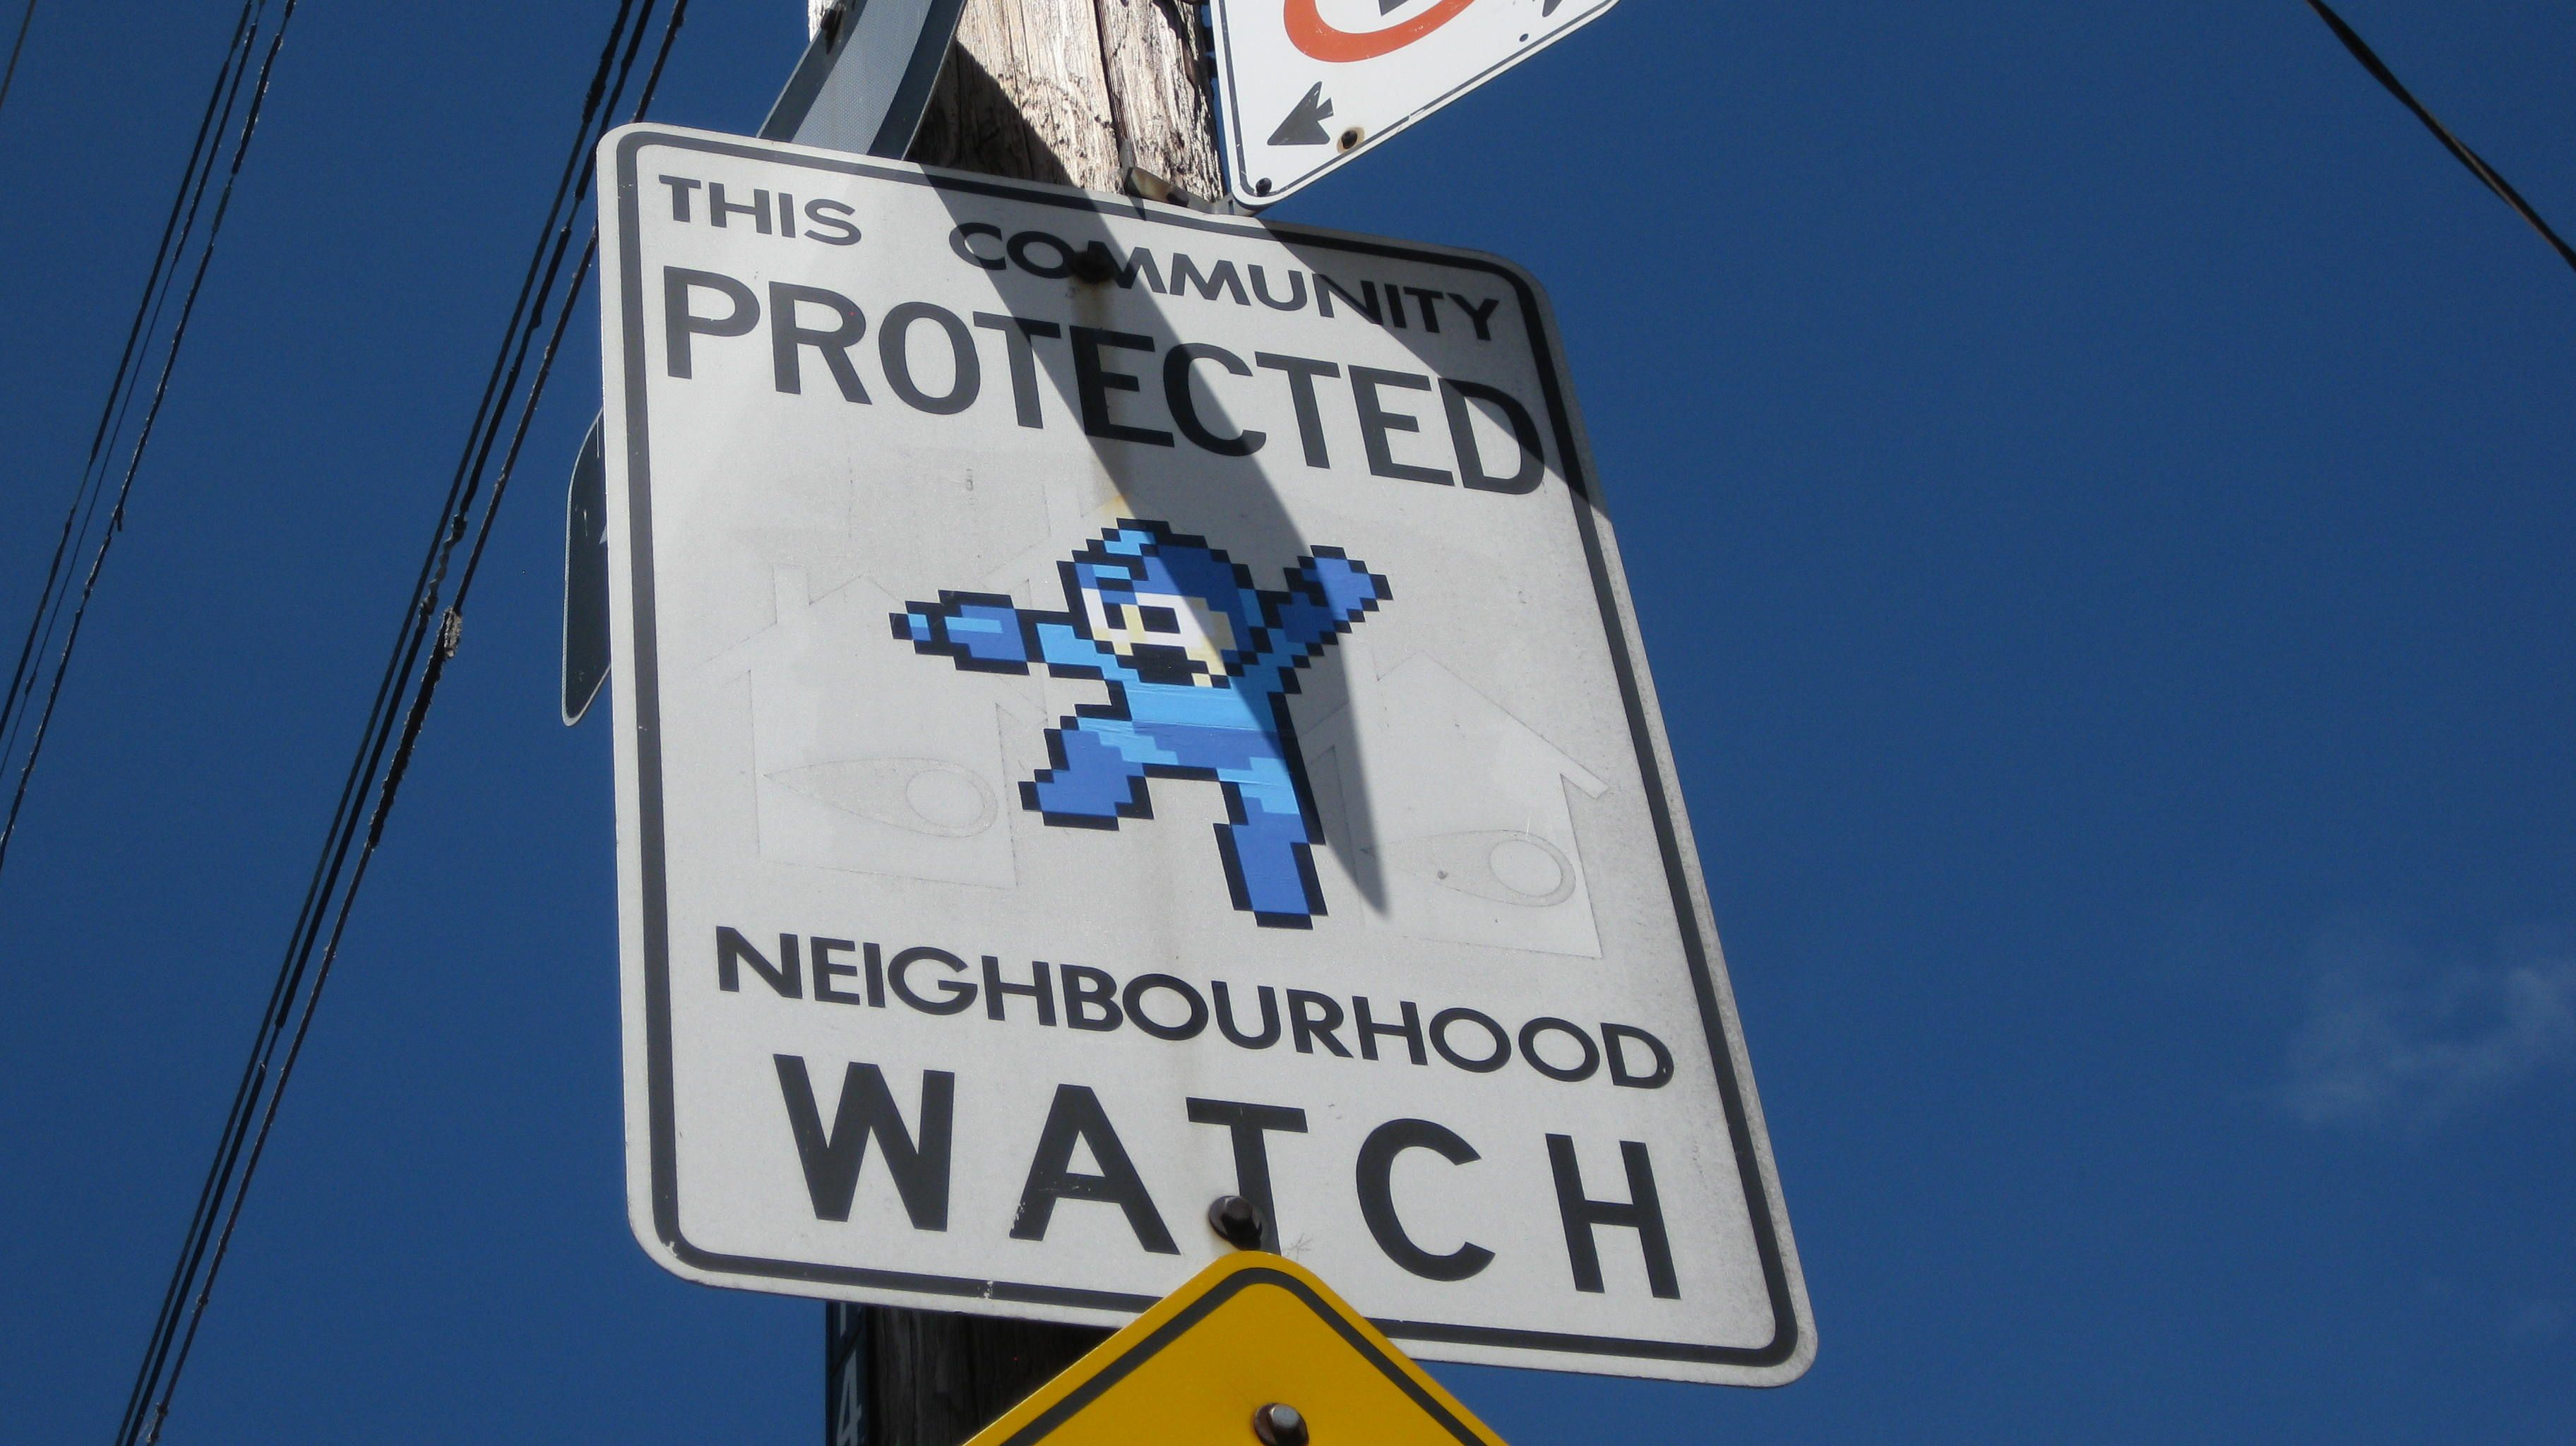 These Edited Neighbourhood Watch Signs Are Pure Genius